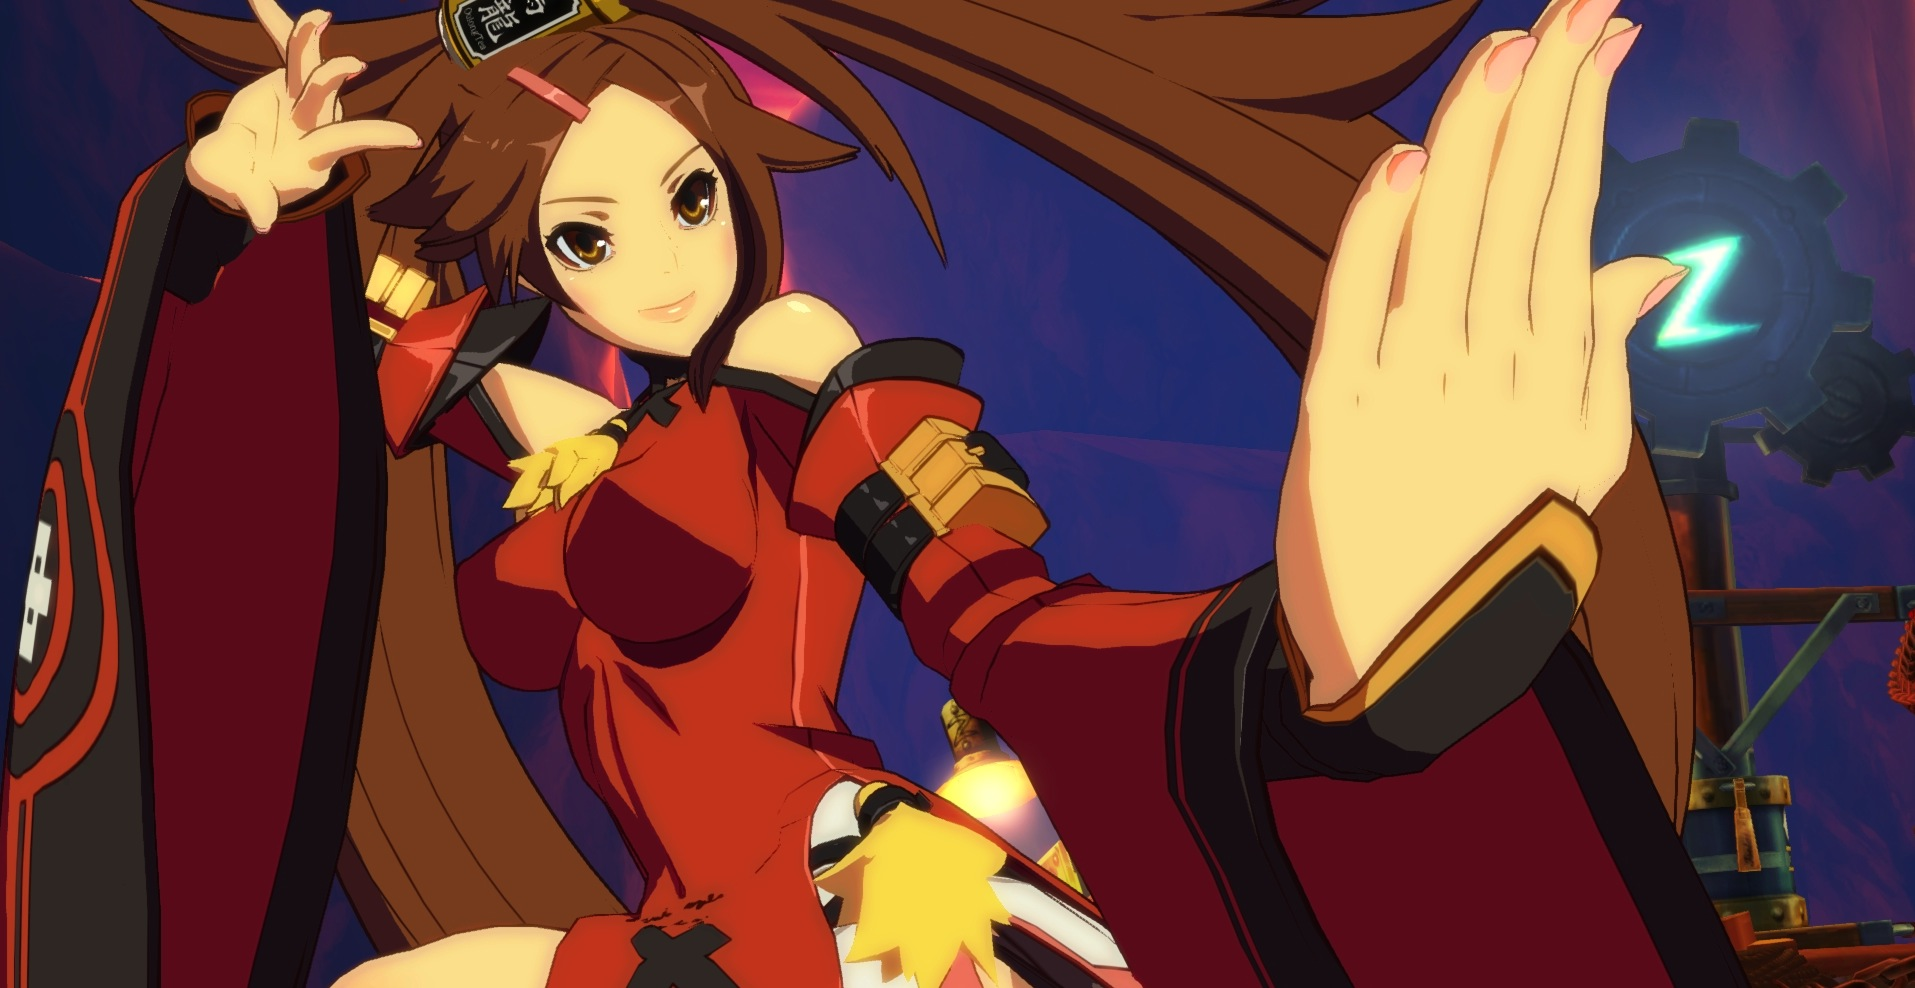 guilty-gear-xrd-revelator-09-14-15-1.jpg